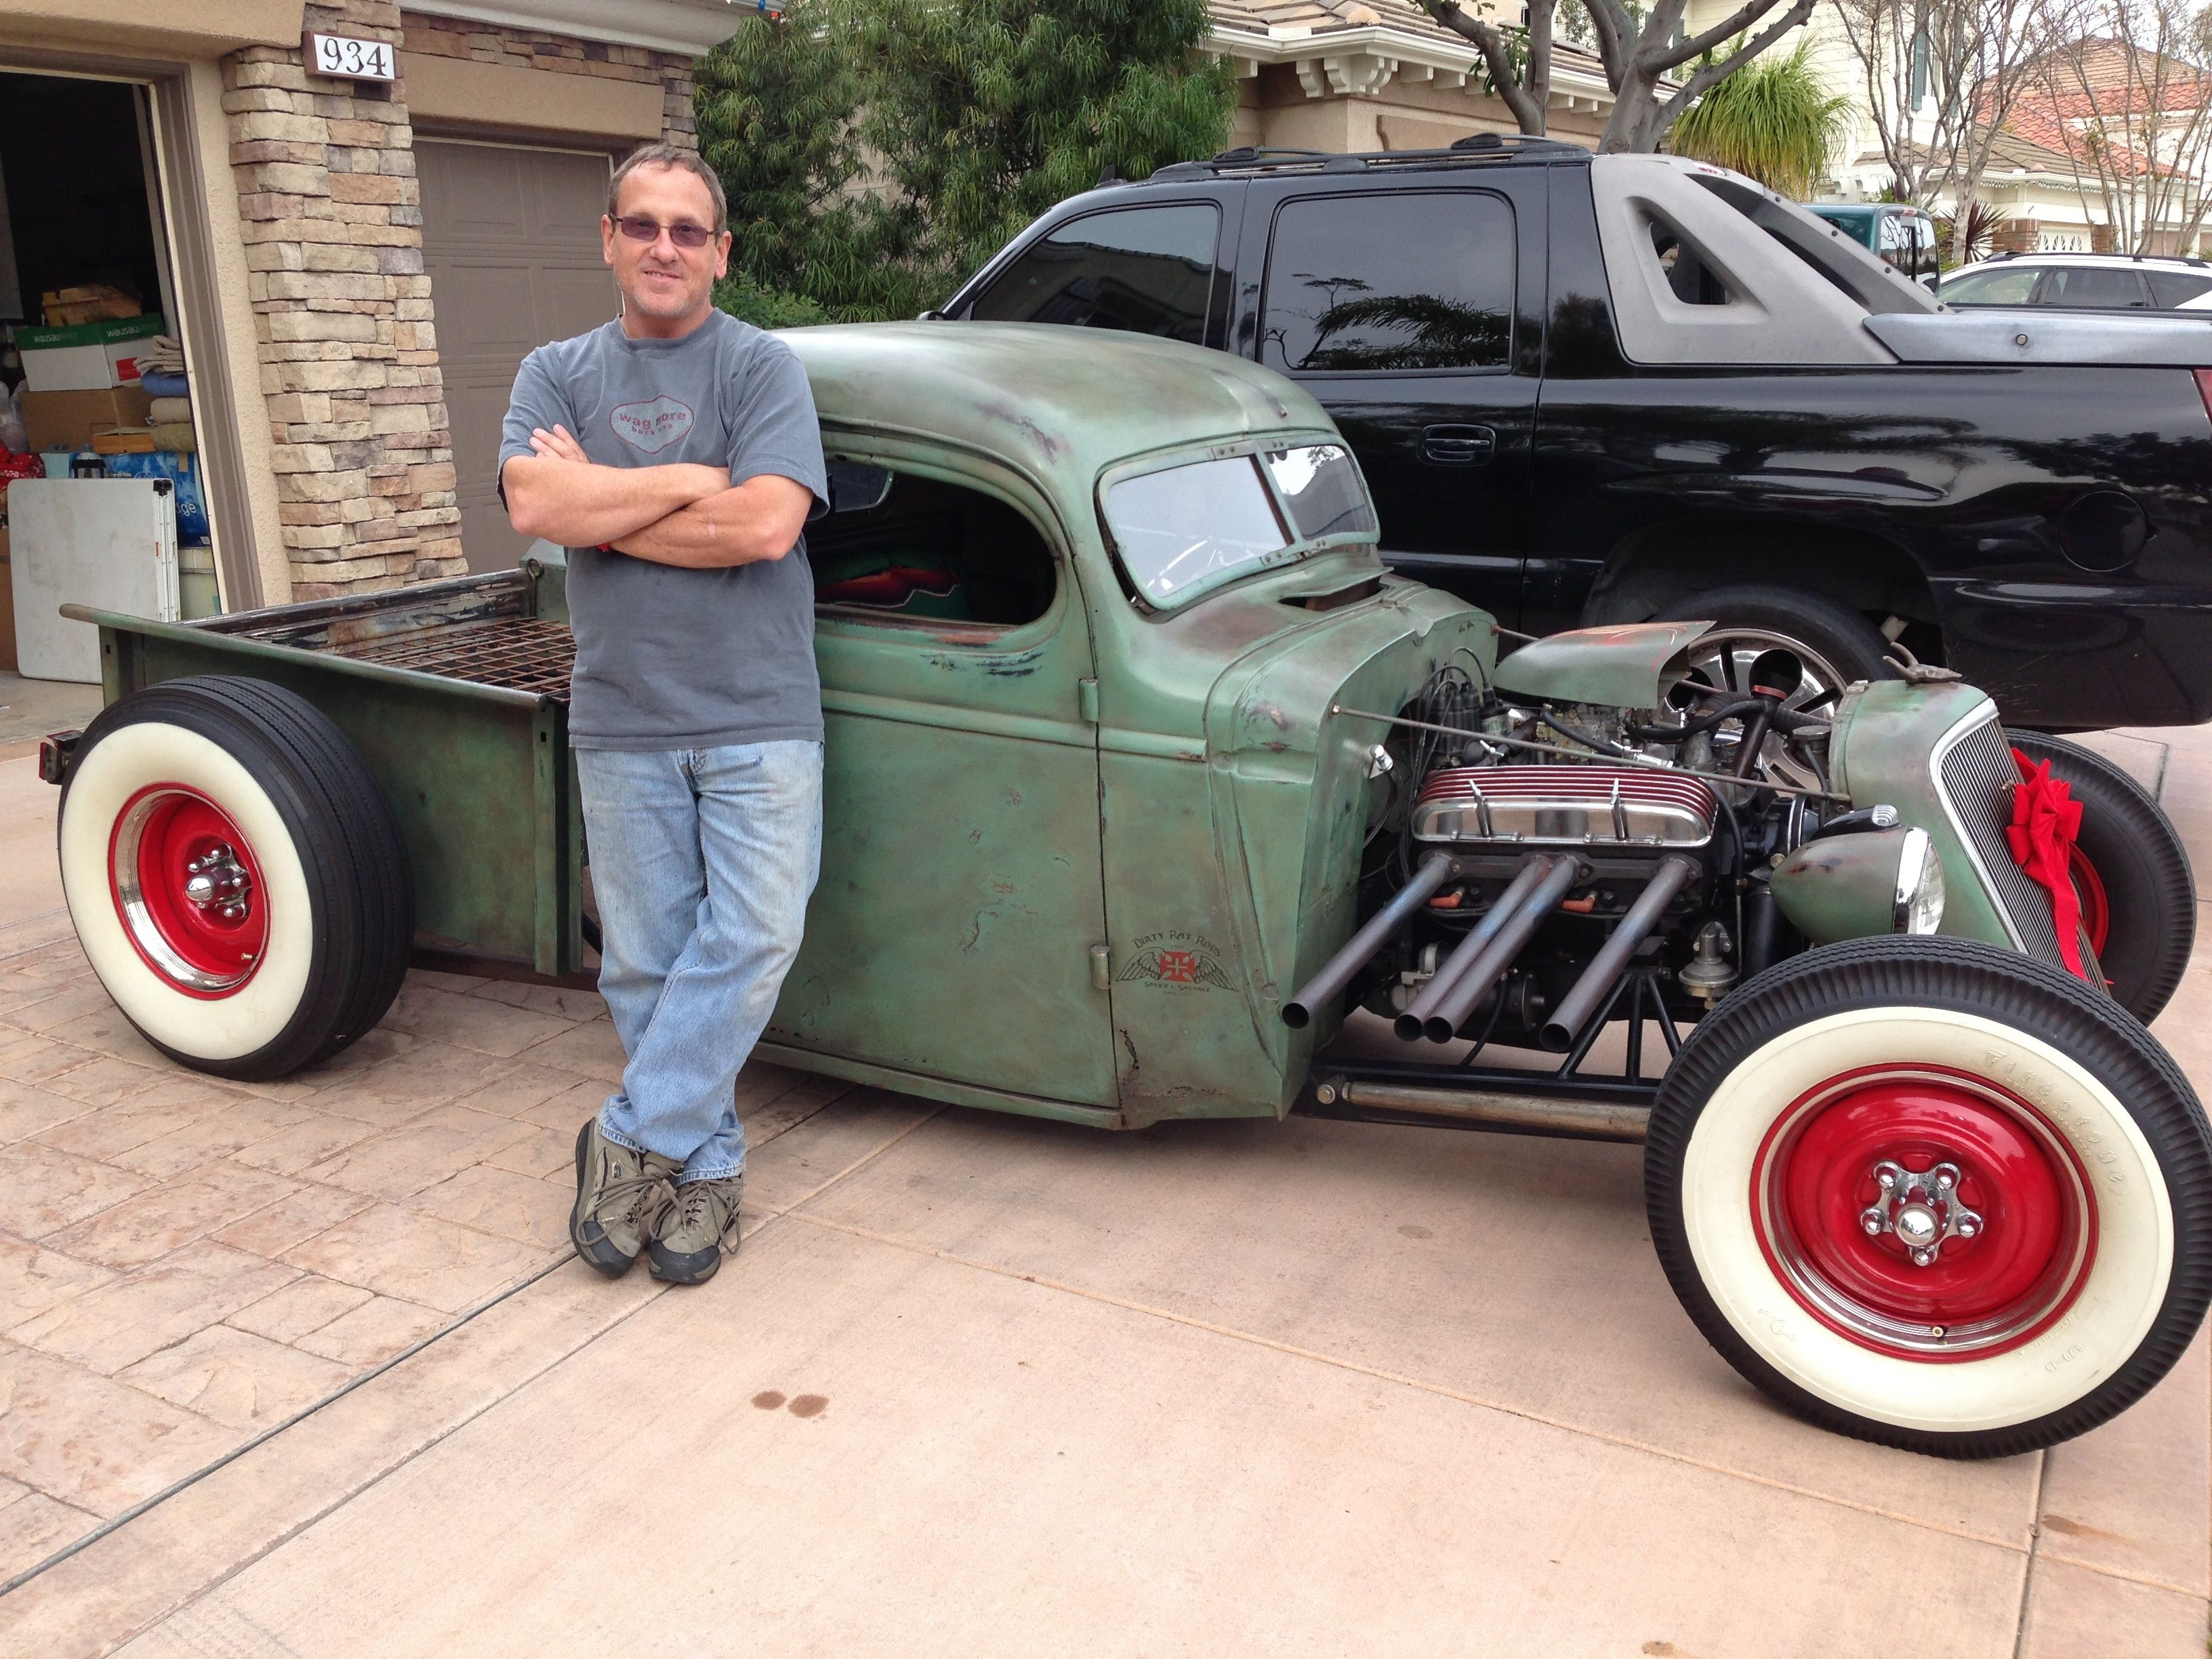 rat rod truck check out images of the 1934 chevy truck rat rod below